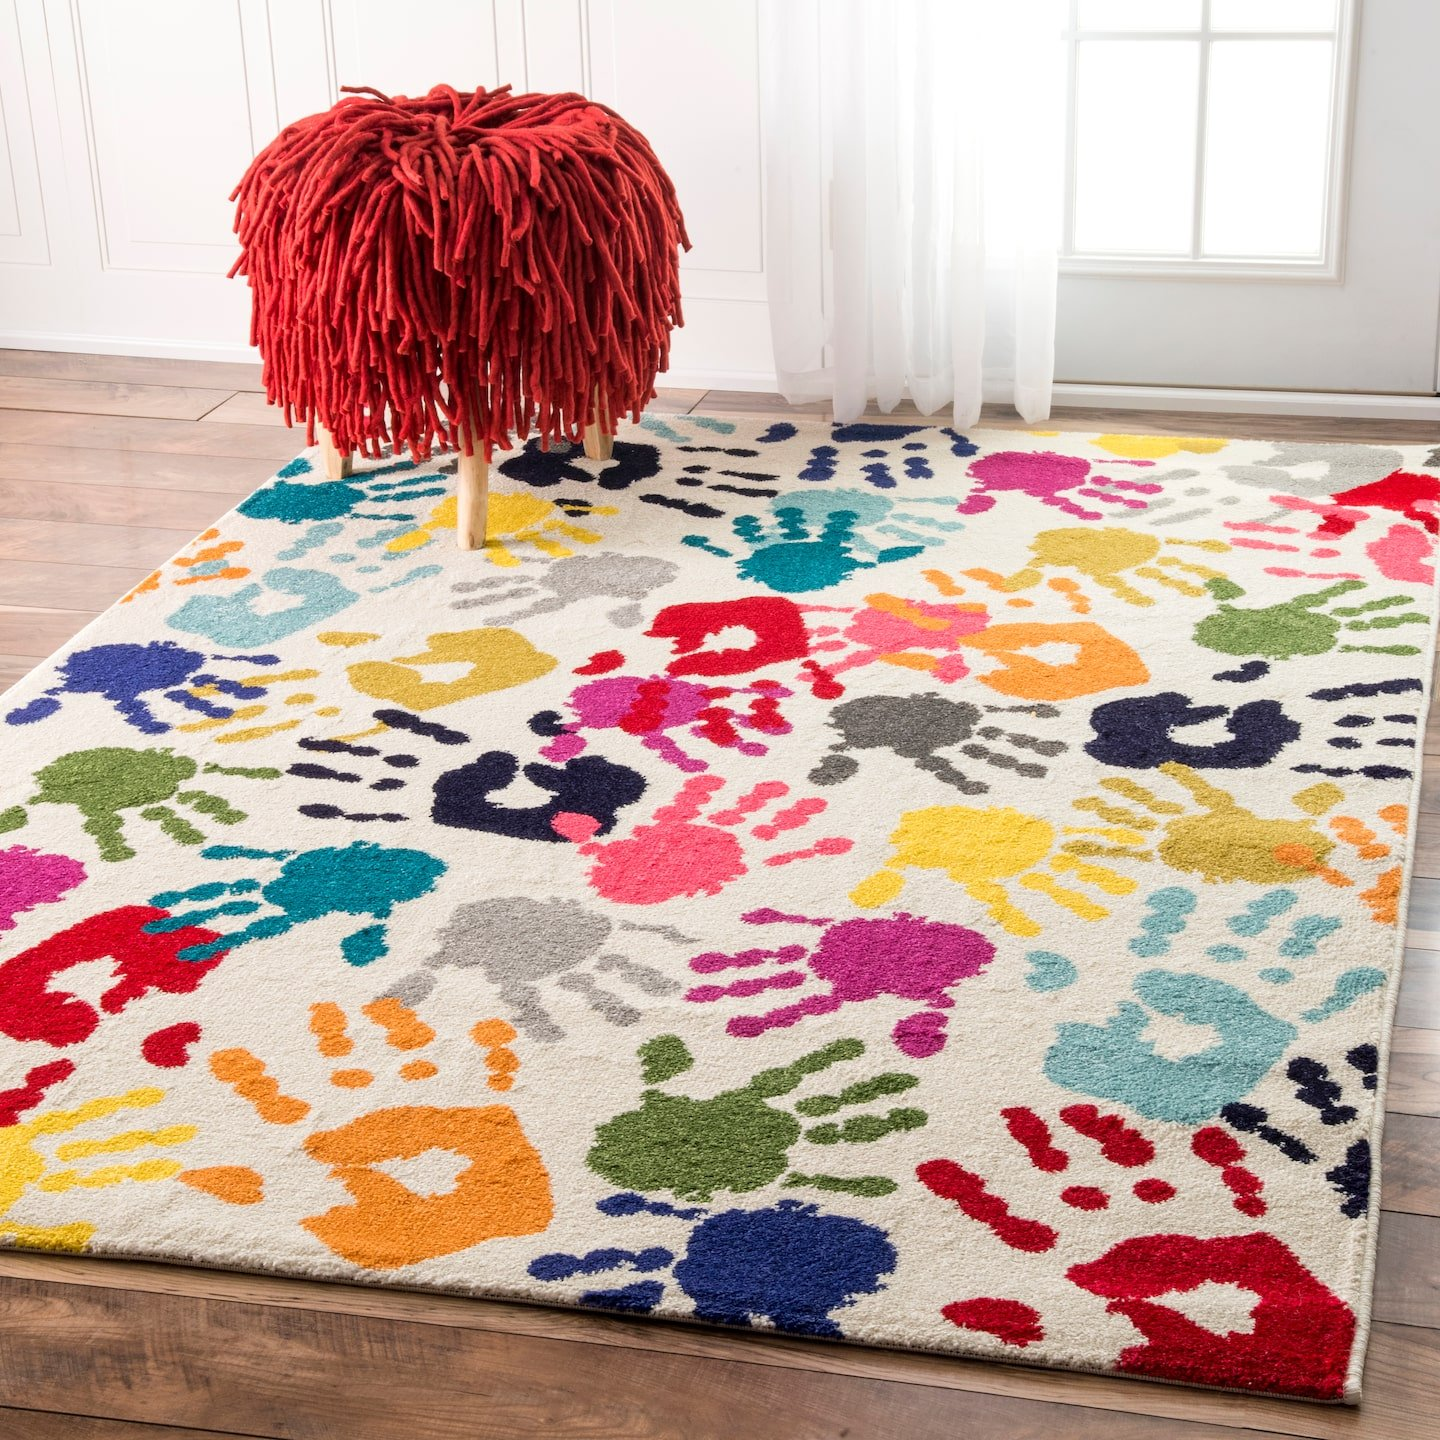 nuLOOM Handprint Collage Kids Nursery Area Rugs, 8' x 10', Multicolor by nuLOOM